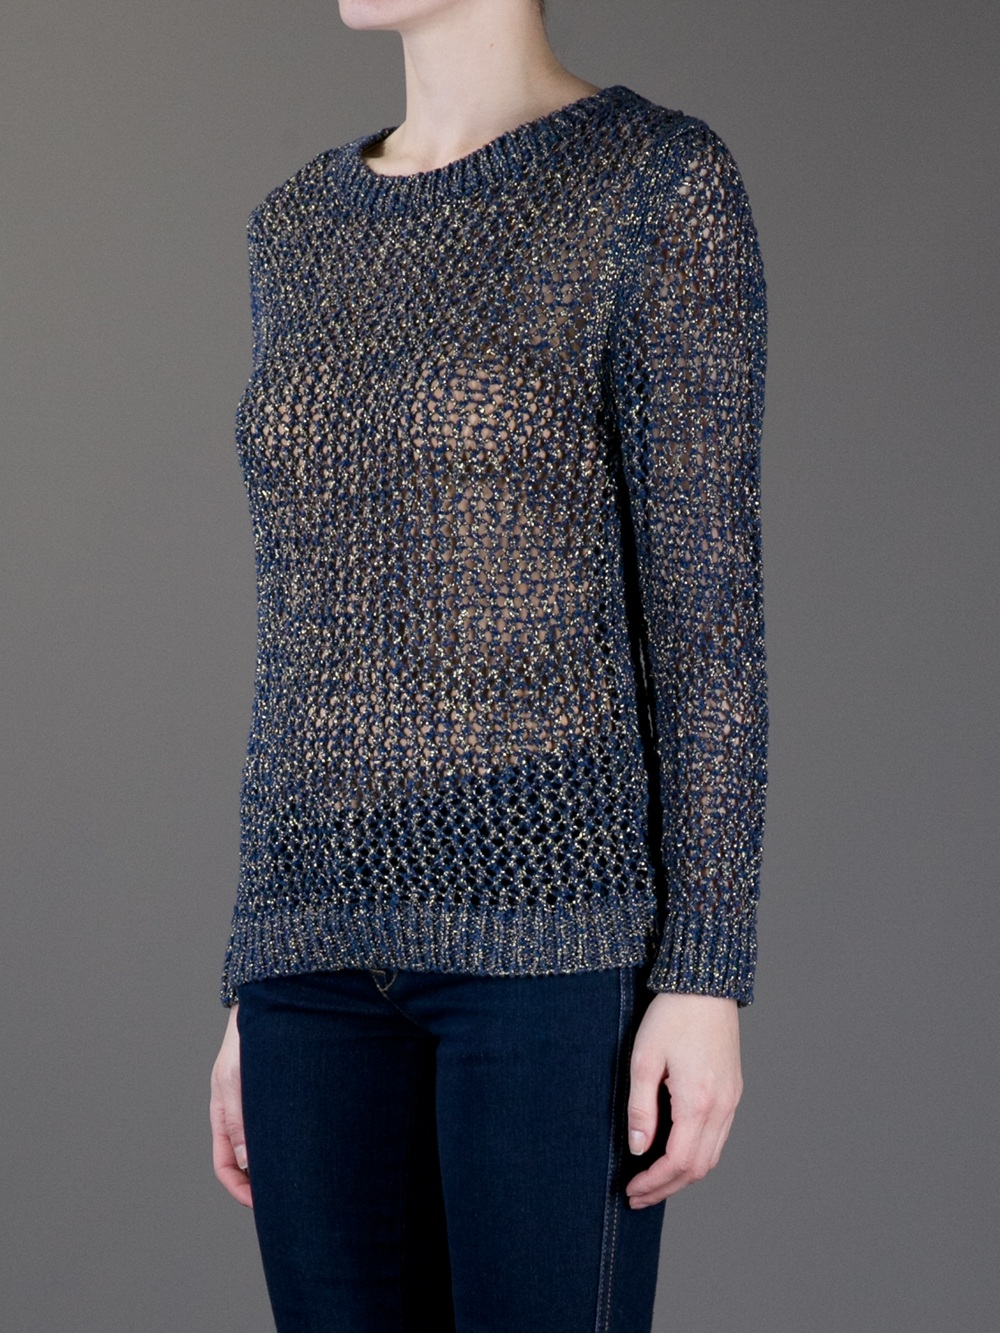 Vanessa bruno athé Loose Knit Sweater in Blue | Lyst